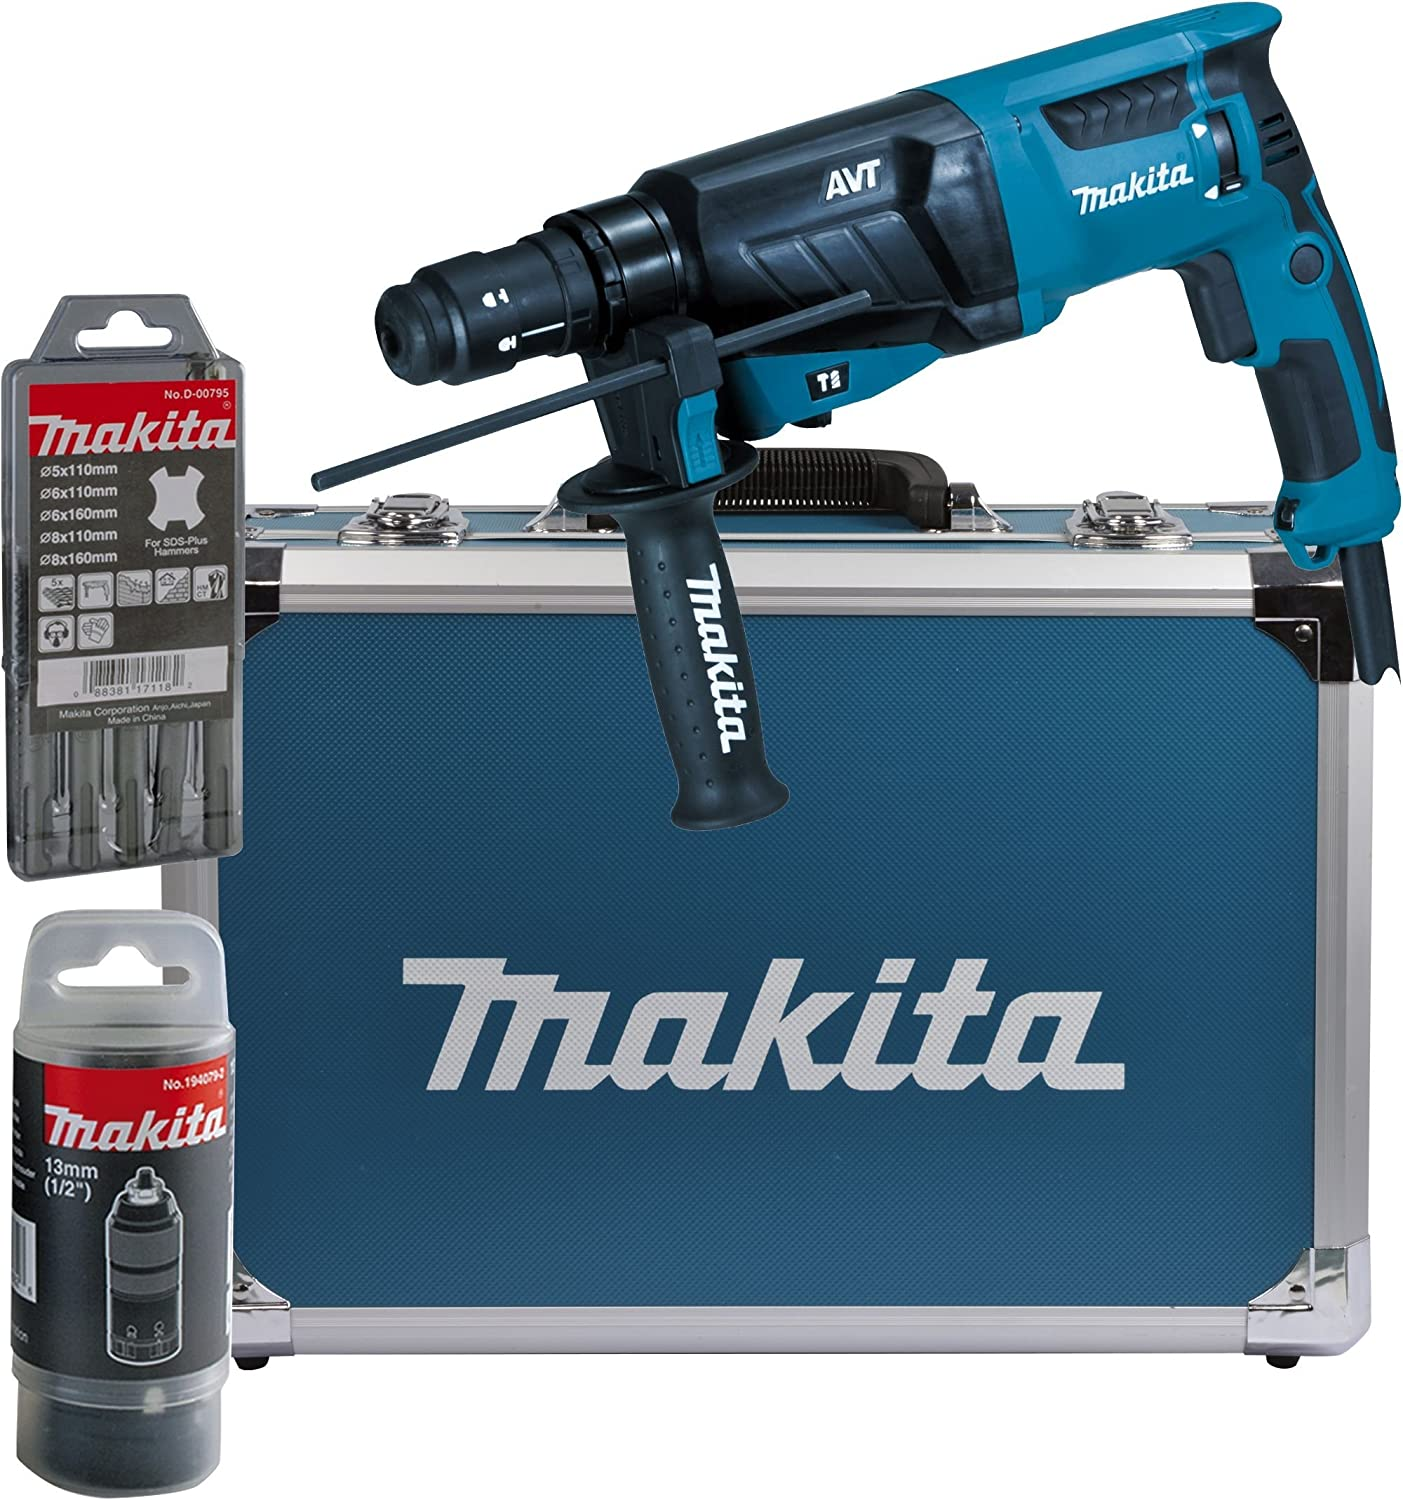 perforateur burineur Makita HR26311FT13J